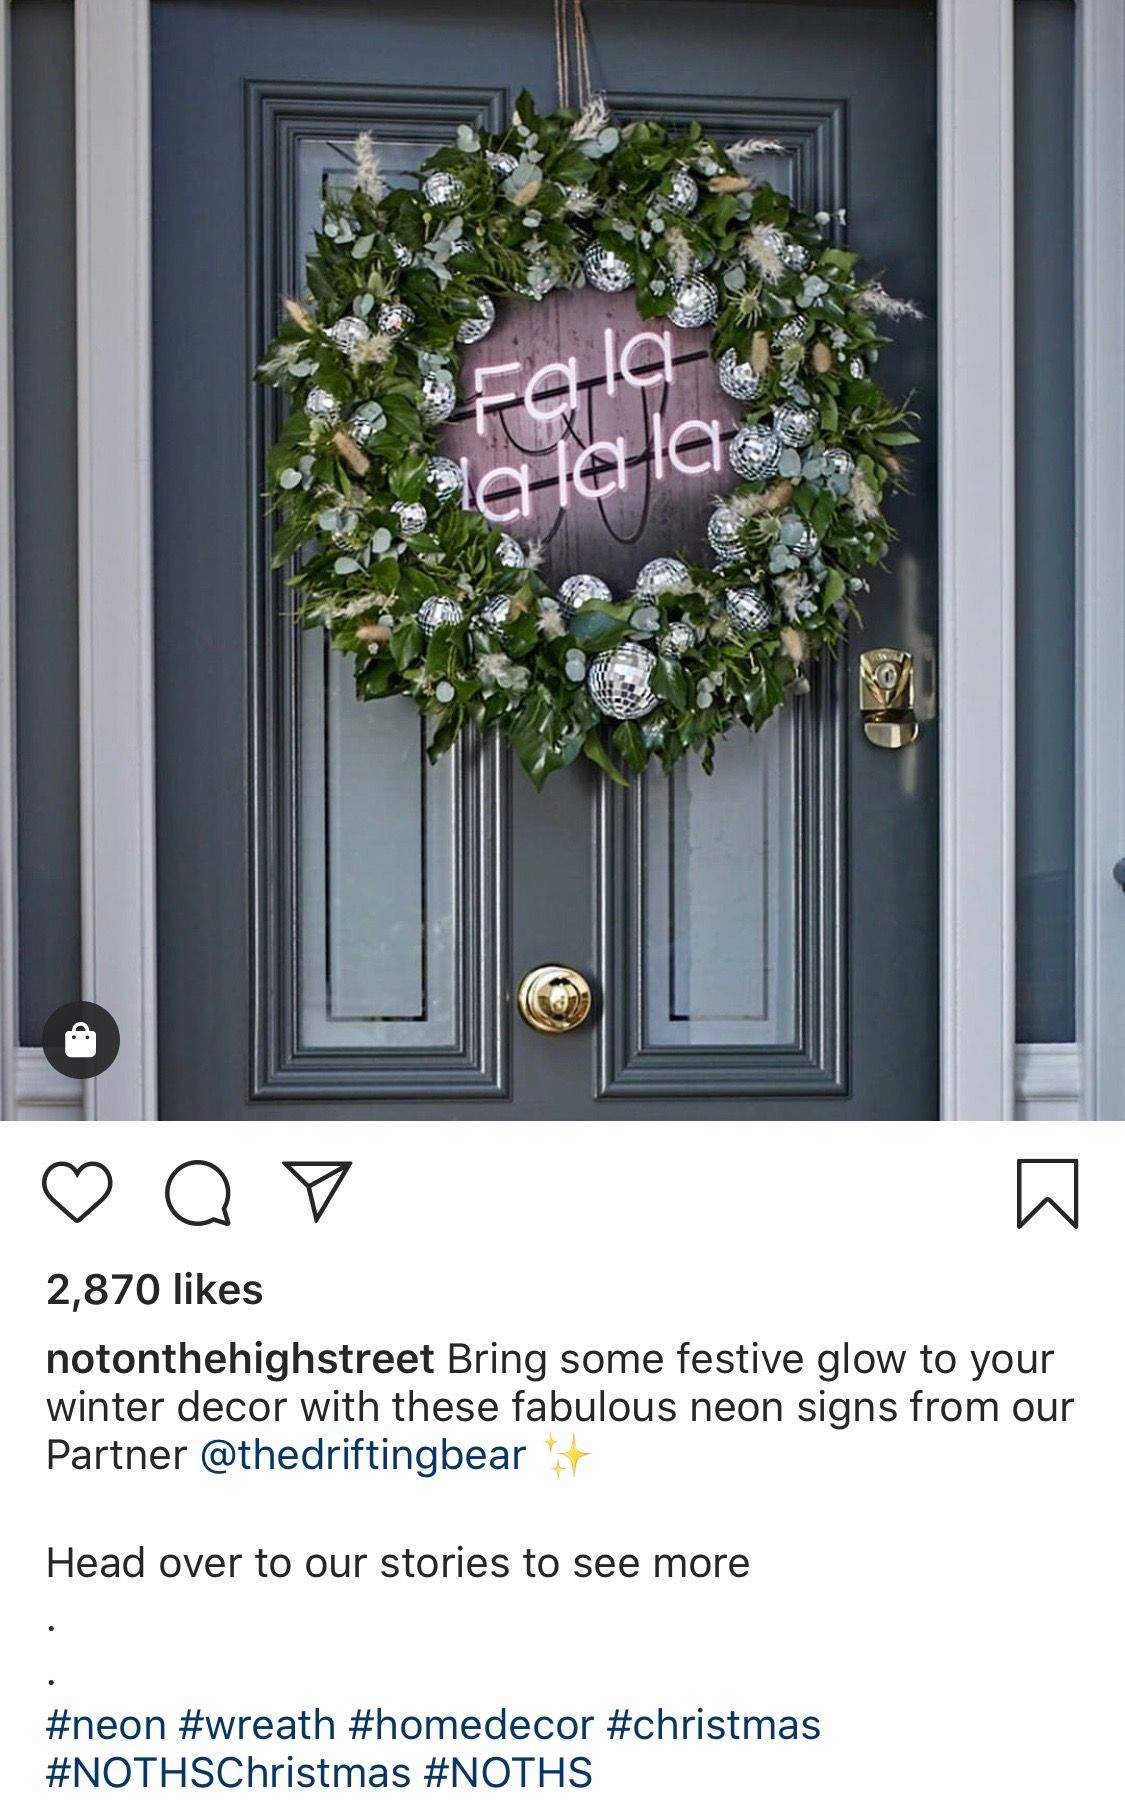 @notonthehighstreet Instagram post featuring the hashtag #NOTHSChristmas